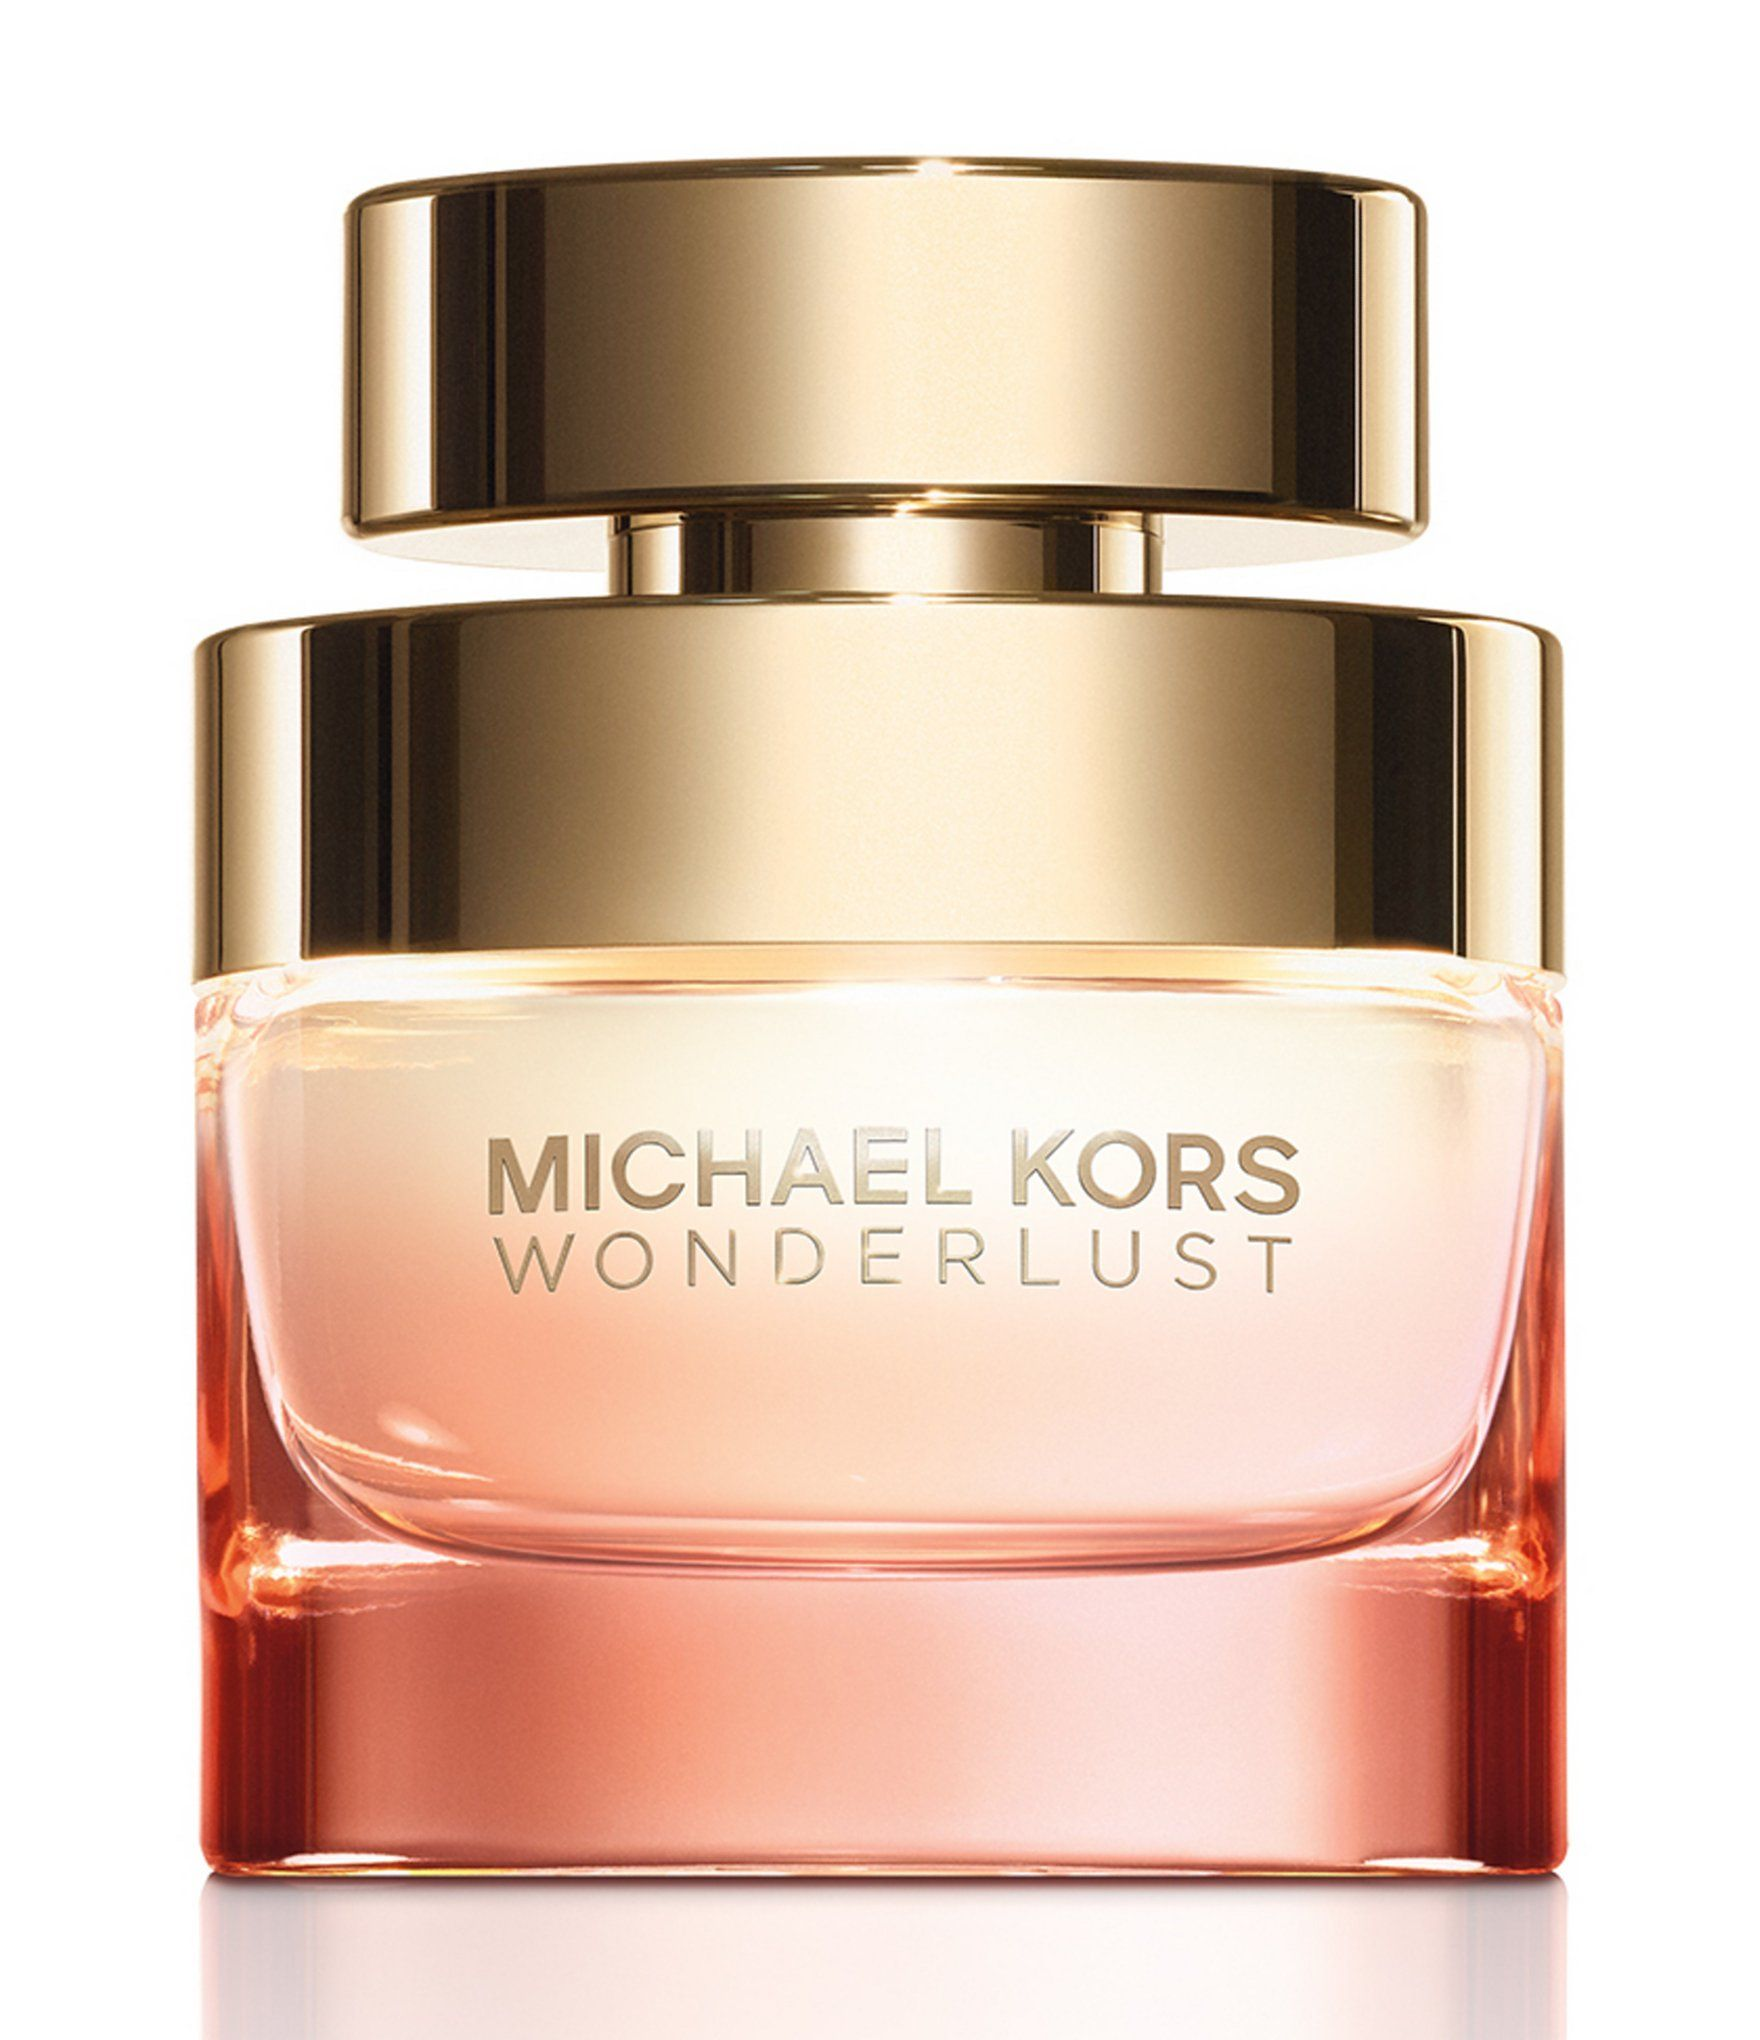 Michael Kors Wonderlust Eau De Parfum Spray In 2019 2018 Wish List